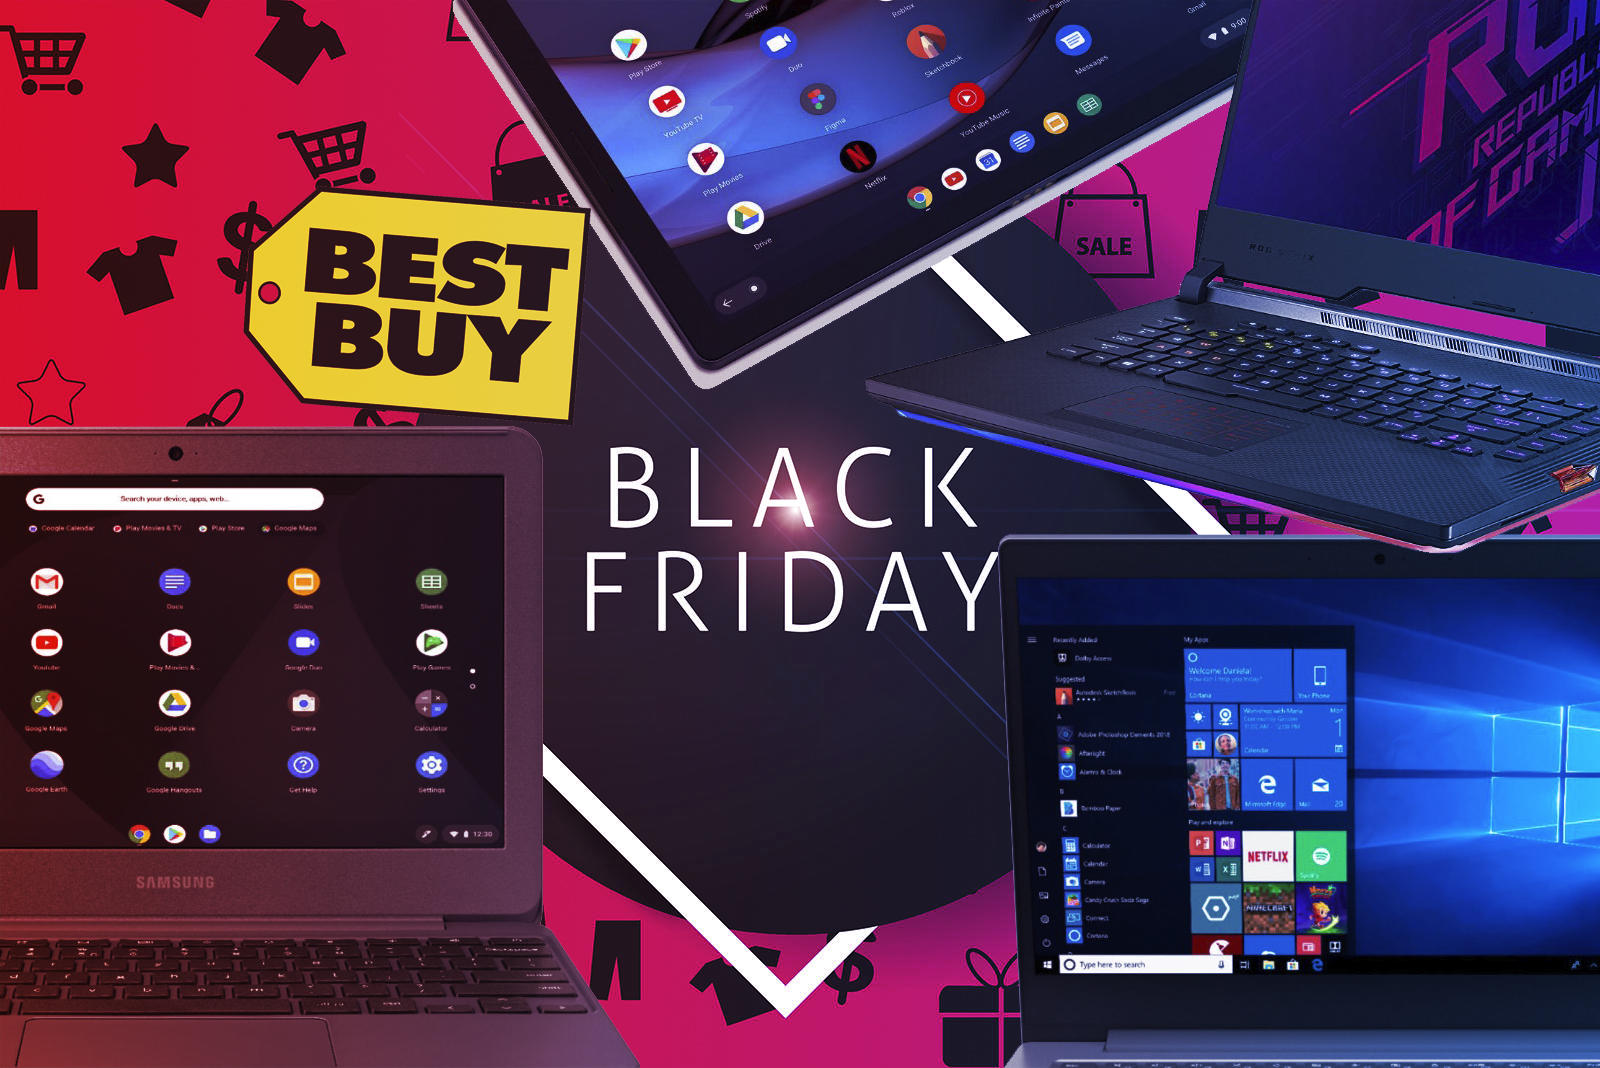 Top Best Buy Black Friday 2019 Deals